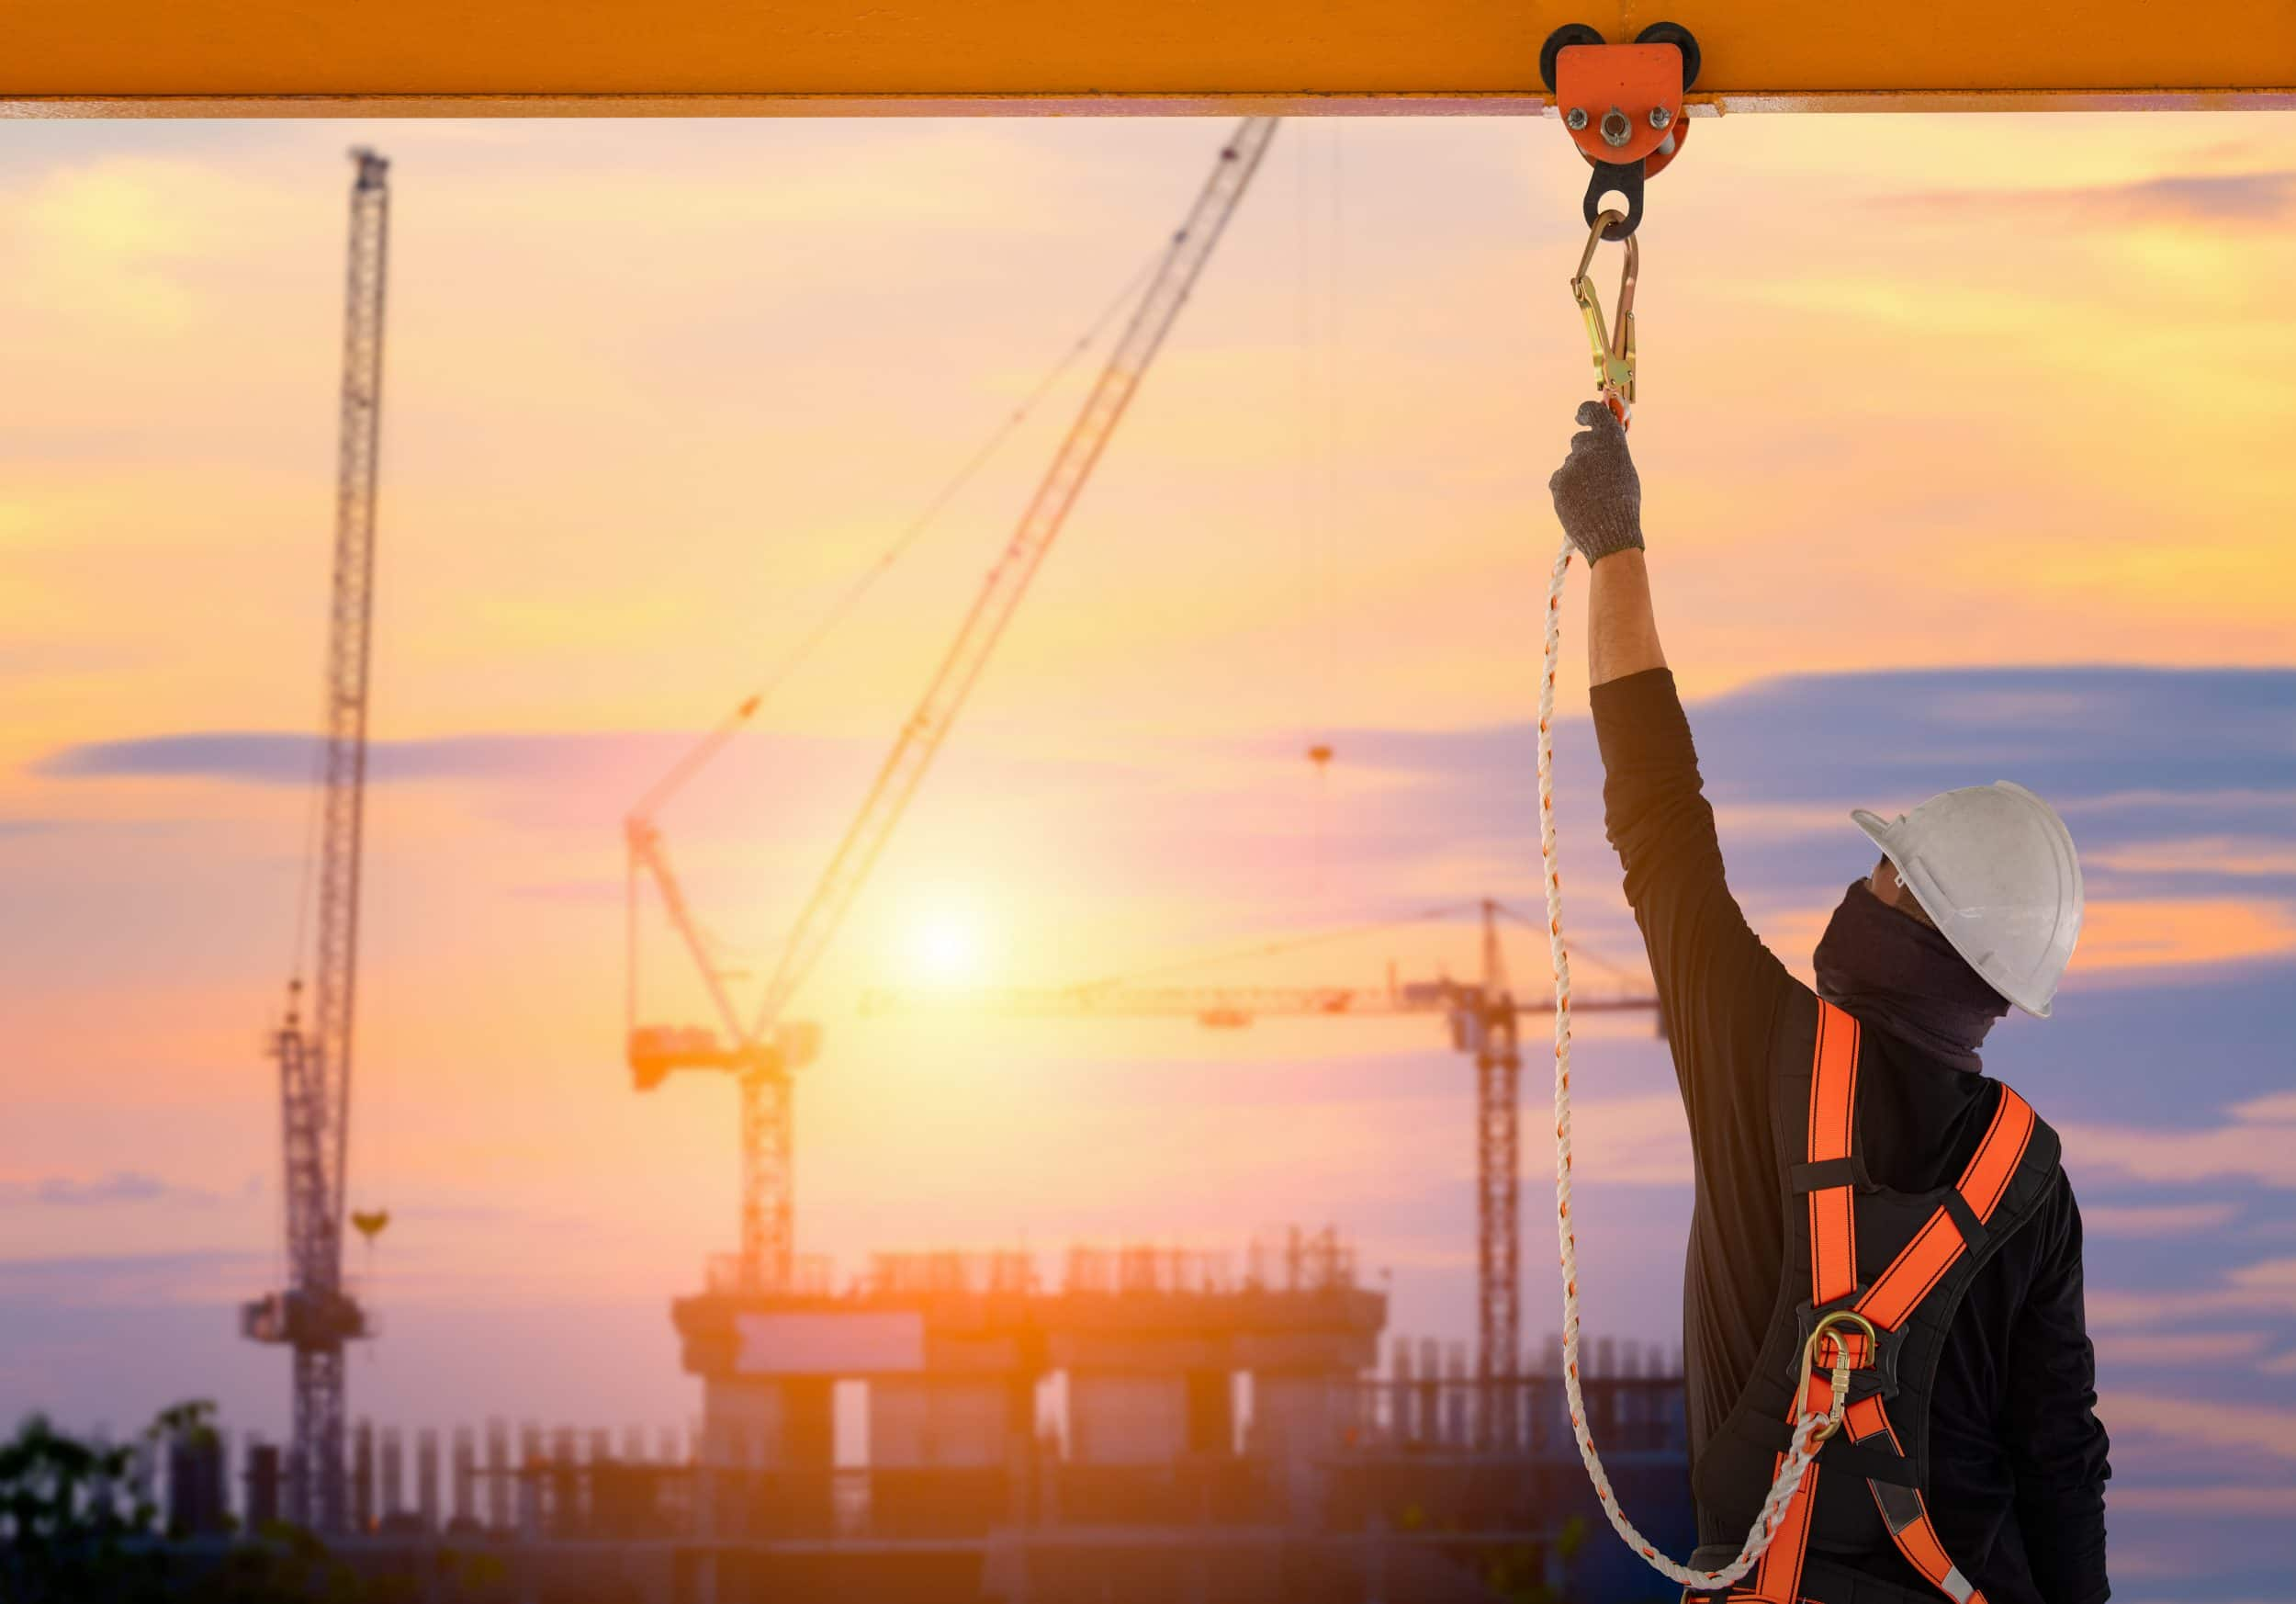 Construction,Worker,Wearing,Safety,Harness,And,Safety,Line,Working,High